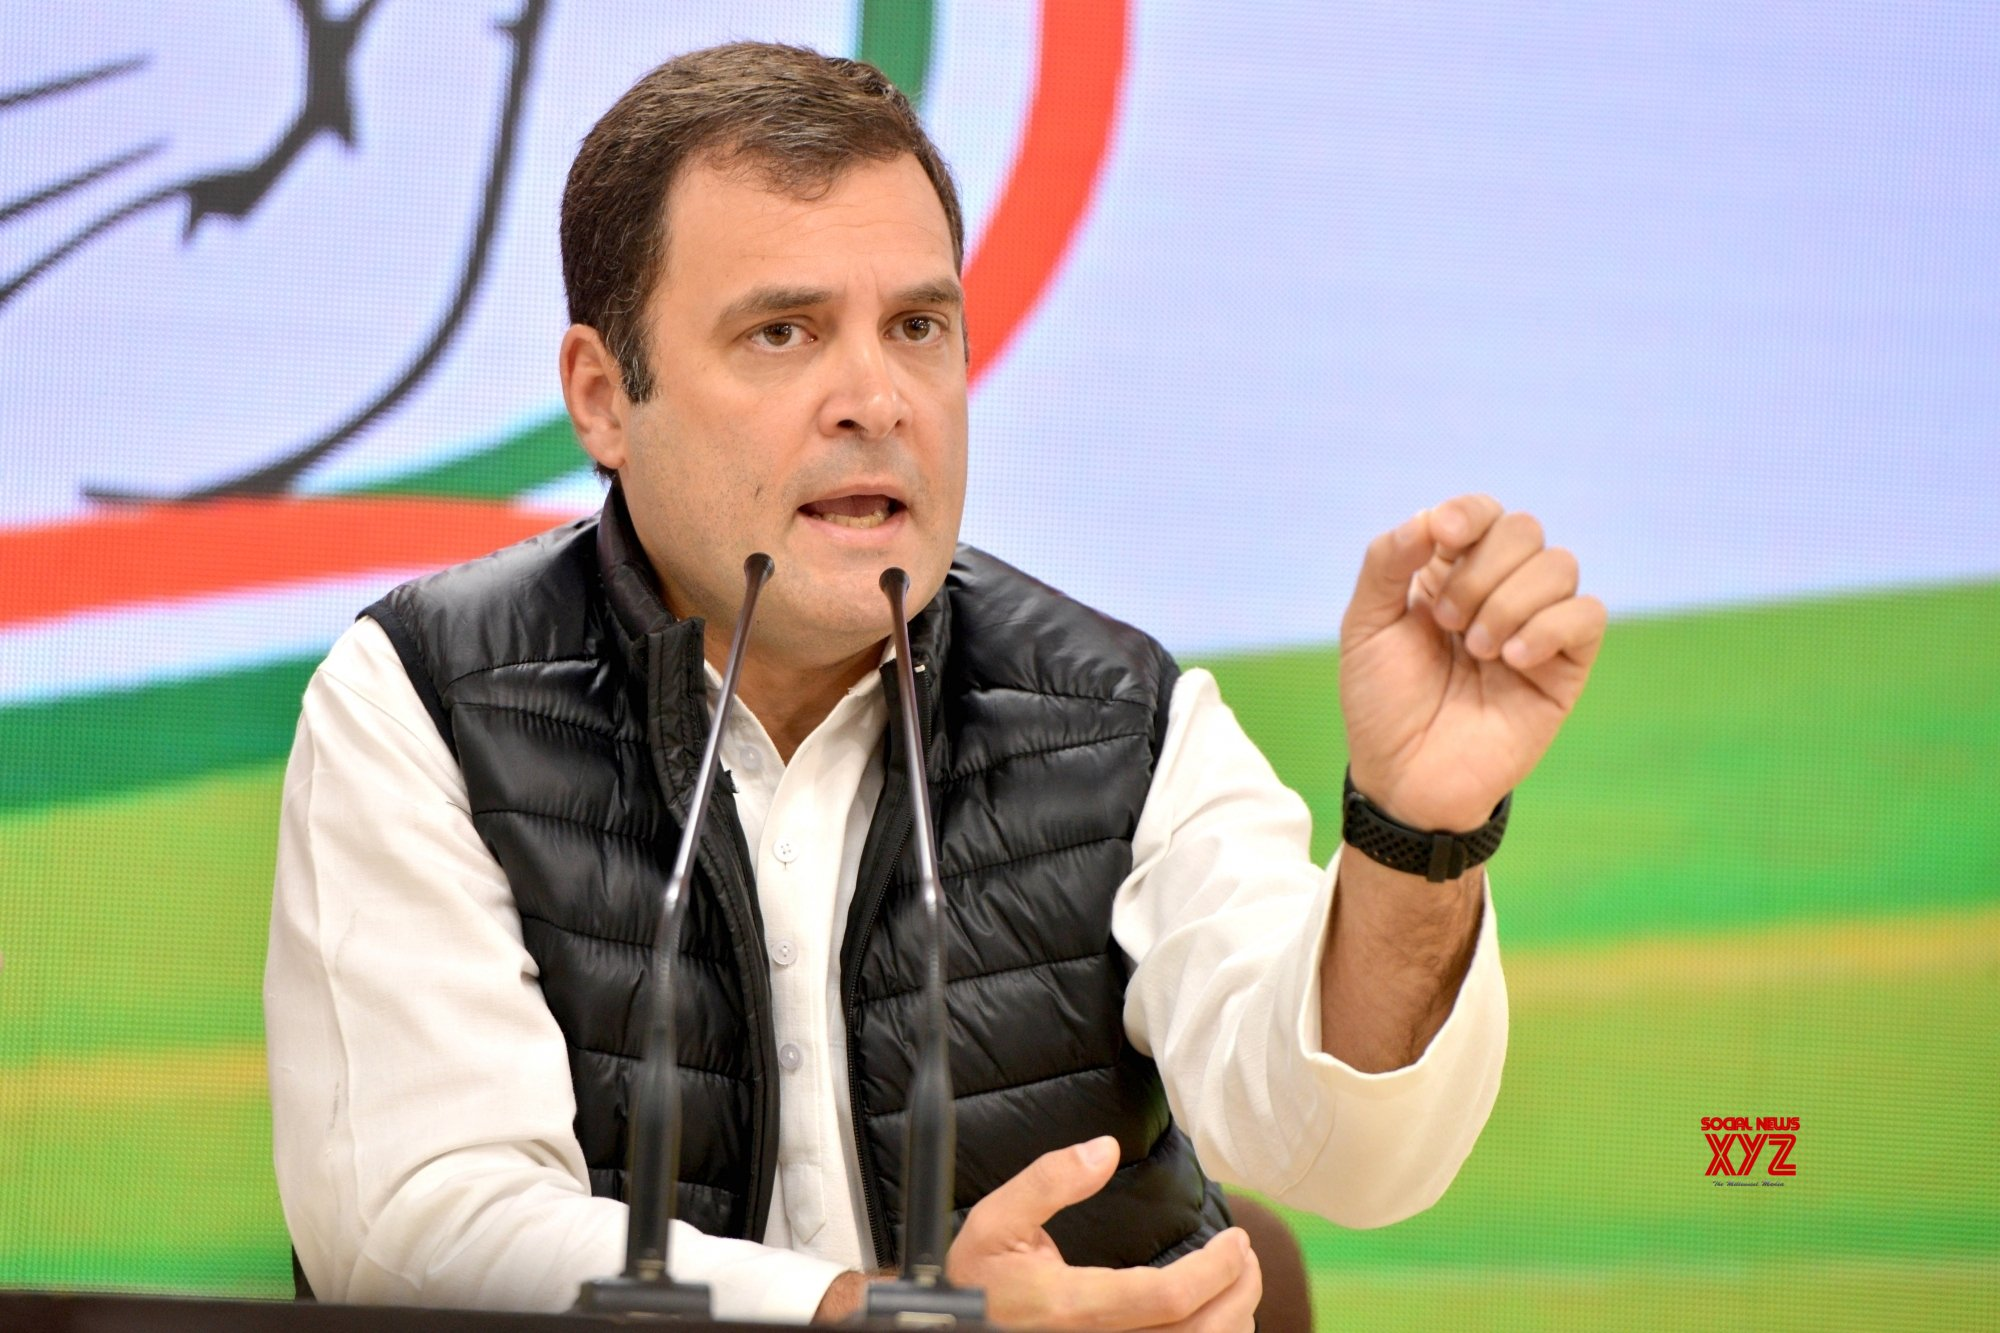 Thank BJP, RSS for letting me wage ideological battle: Rahul